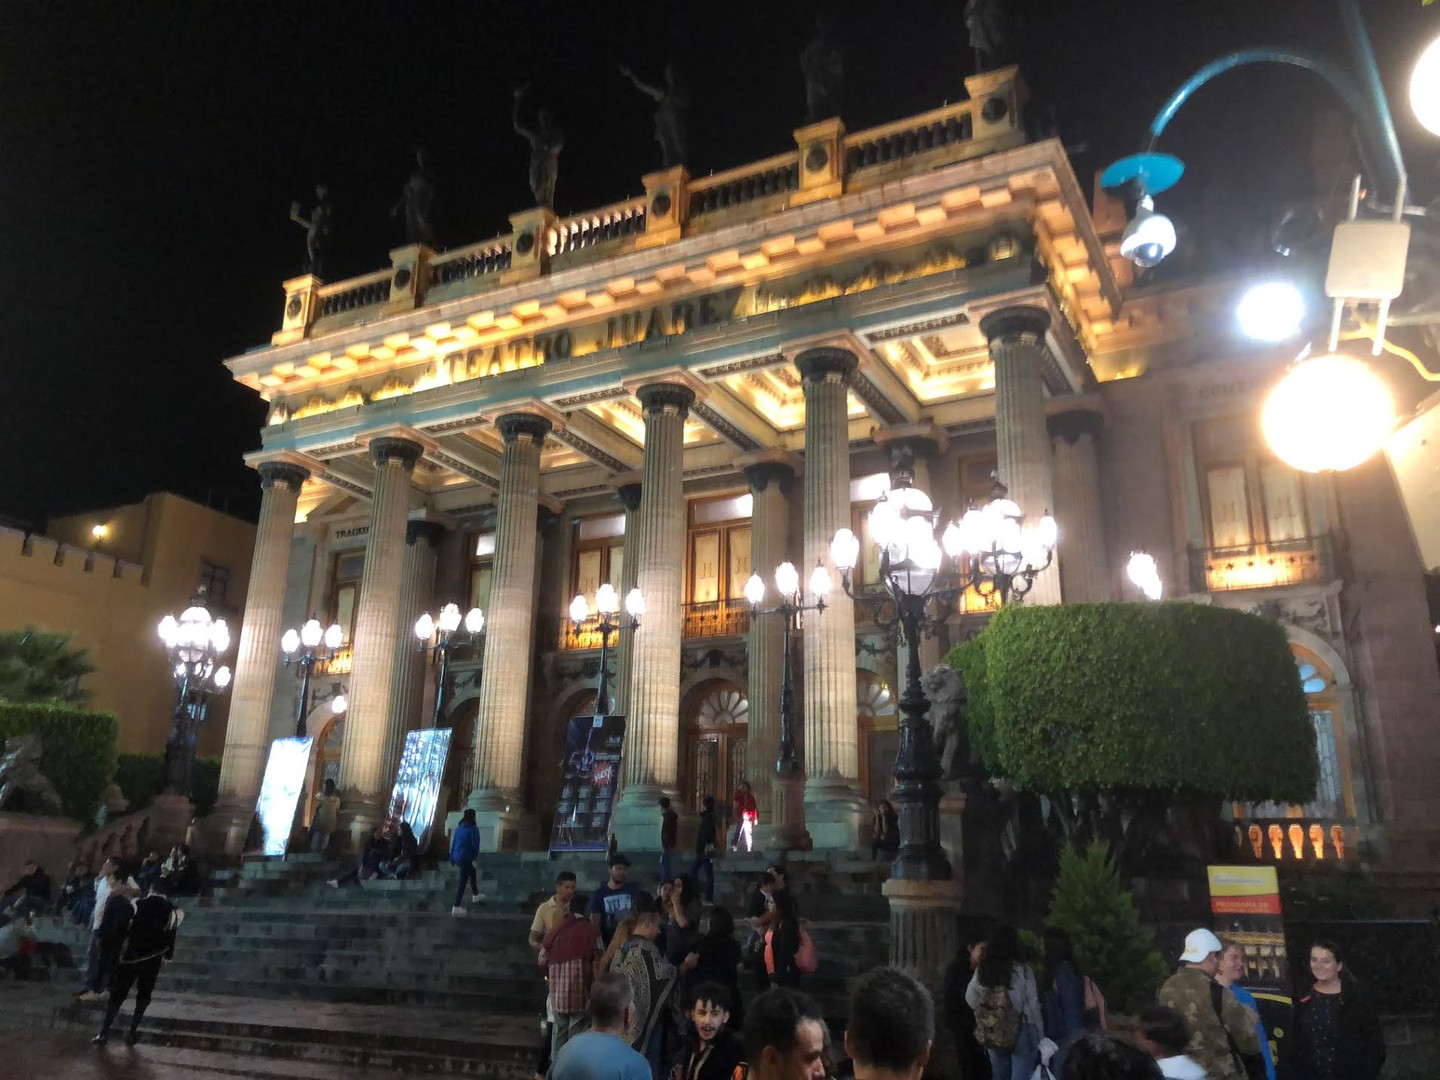 Night shot of Teatro Juarez